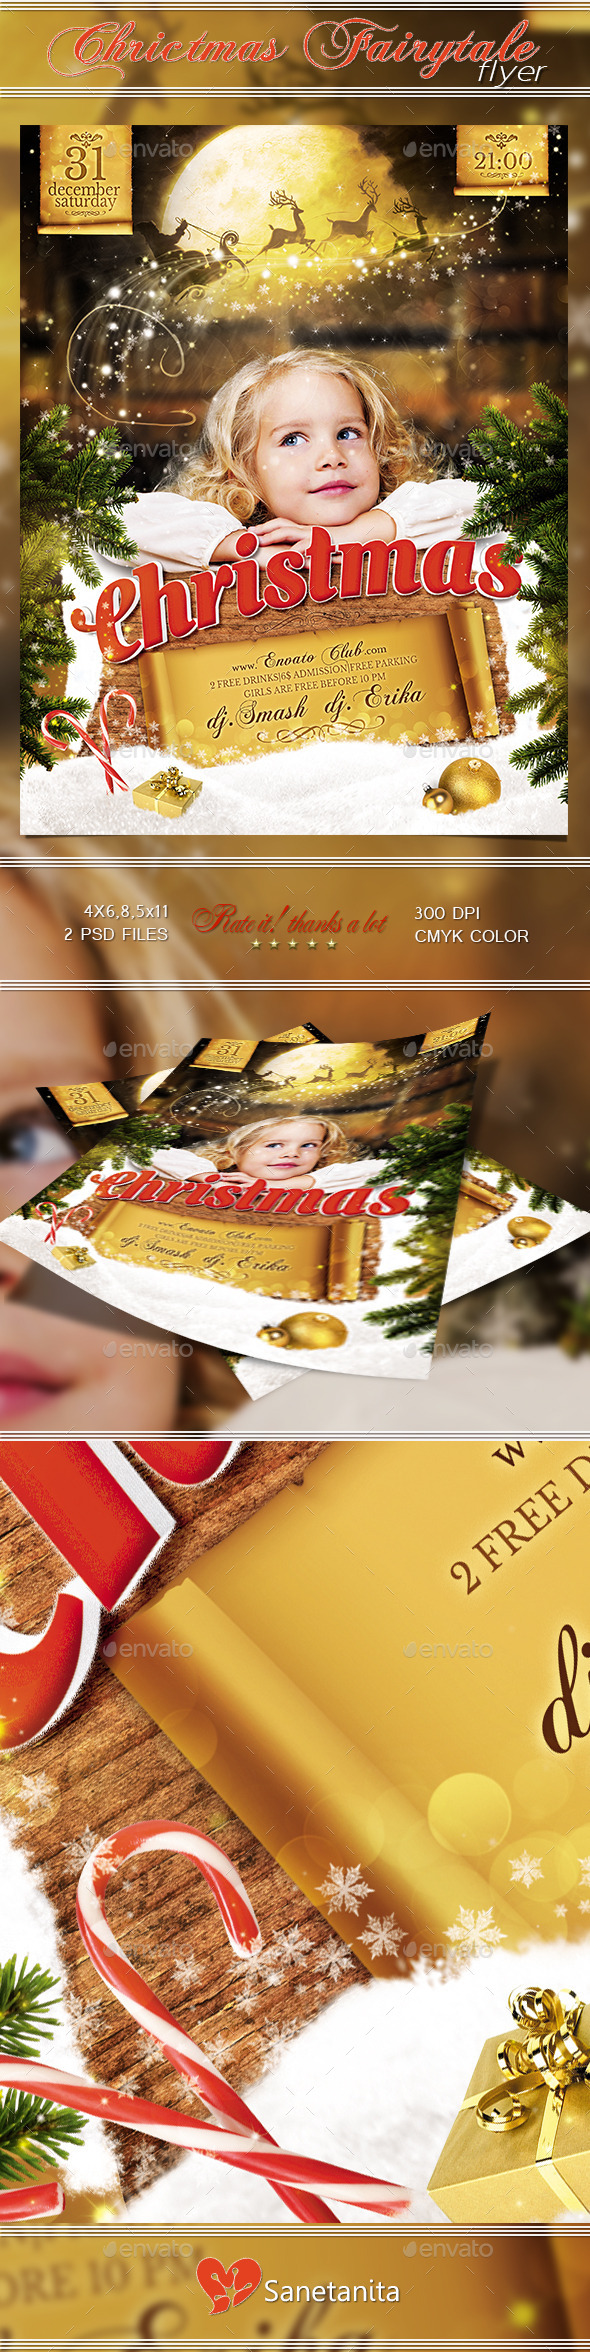 GraphicRiver Christmas Fairytale Flyer 9768289